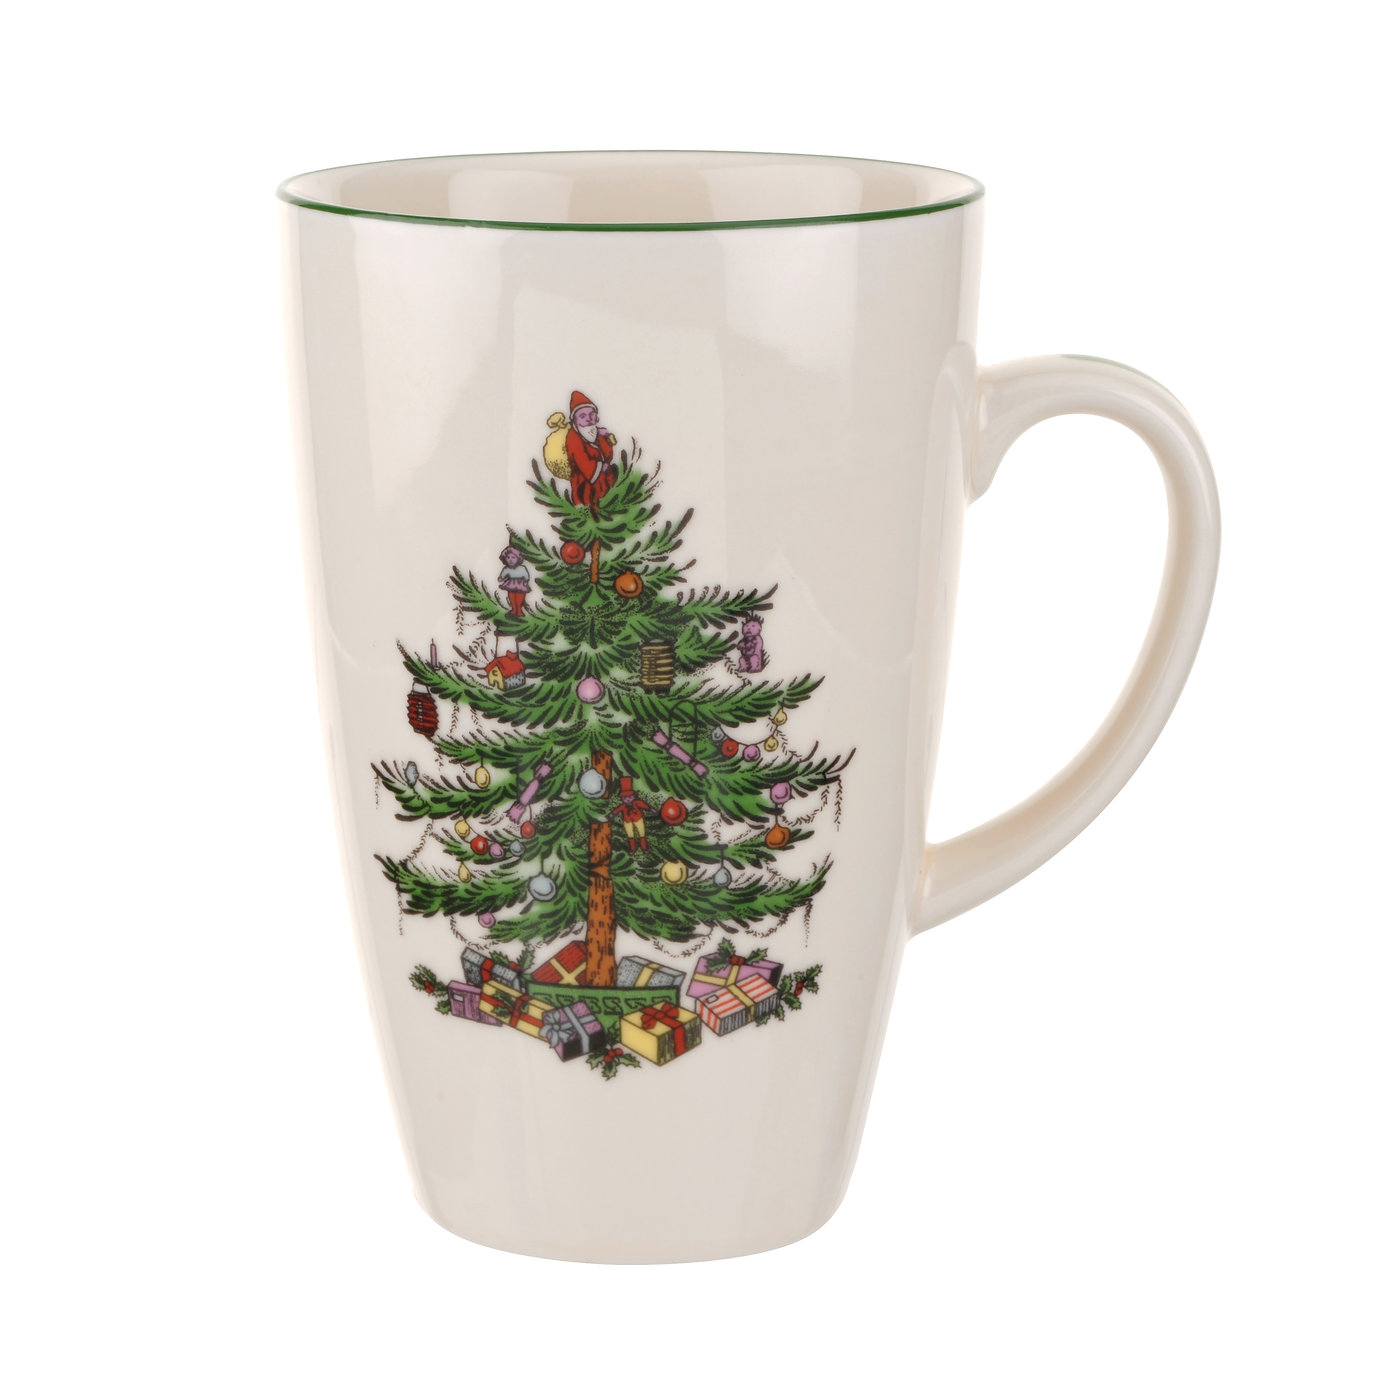 Spode Christmas Tree Latte Mug image number 0